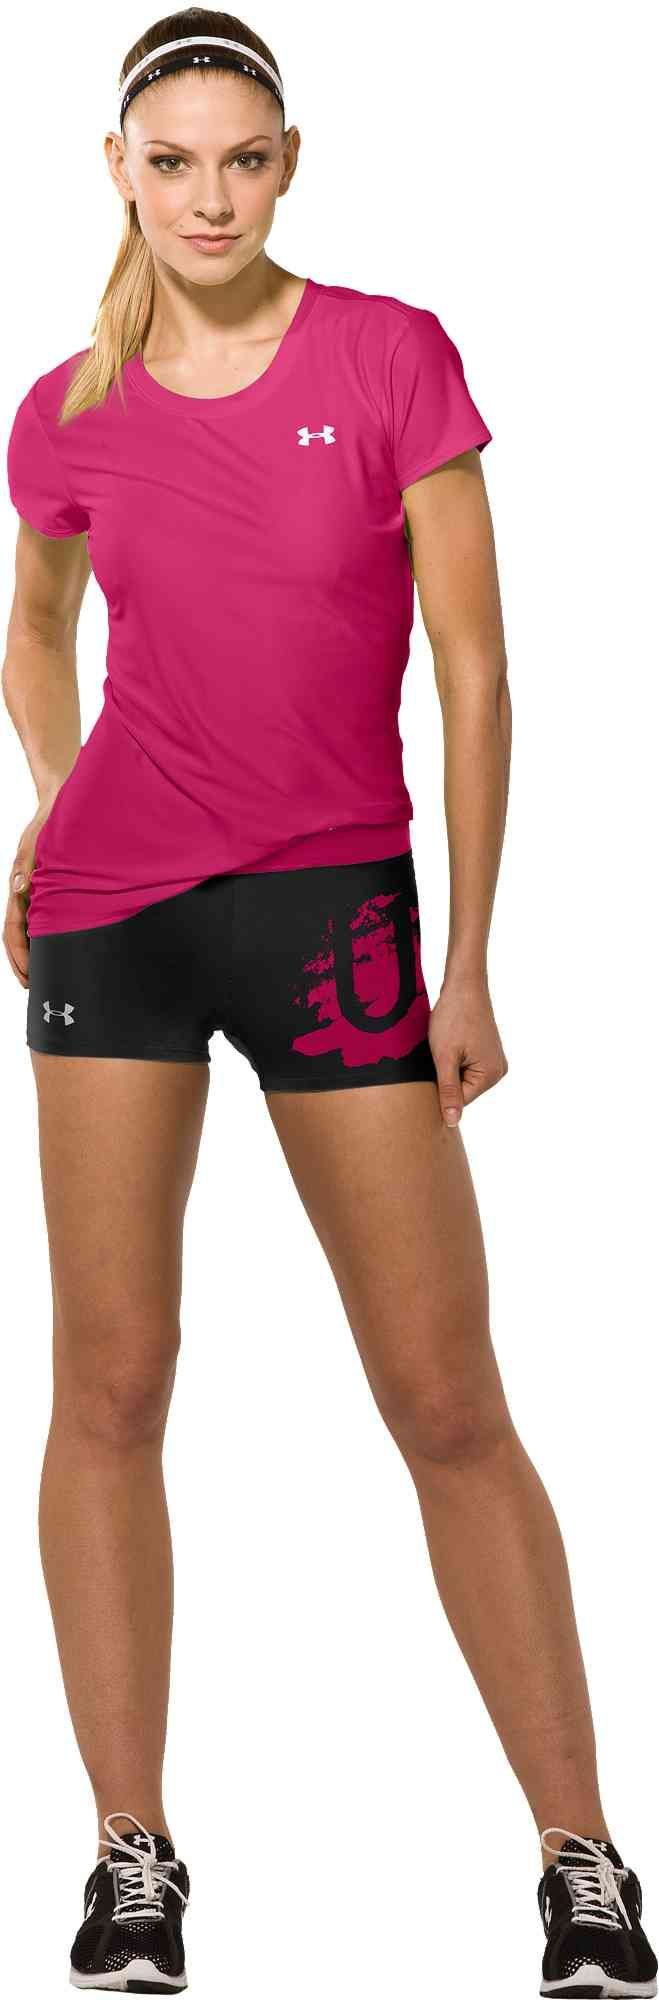 576 best images about sports wear on pinterest running for Under armour lifting shirts